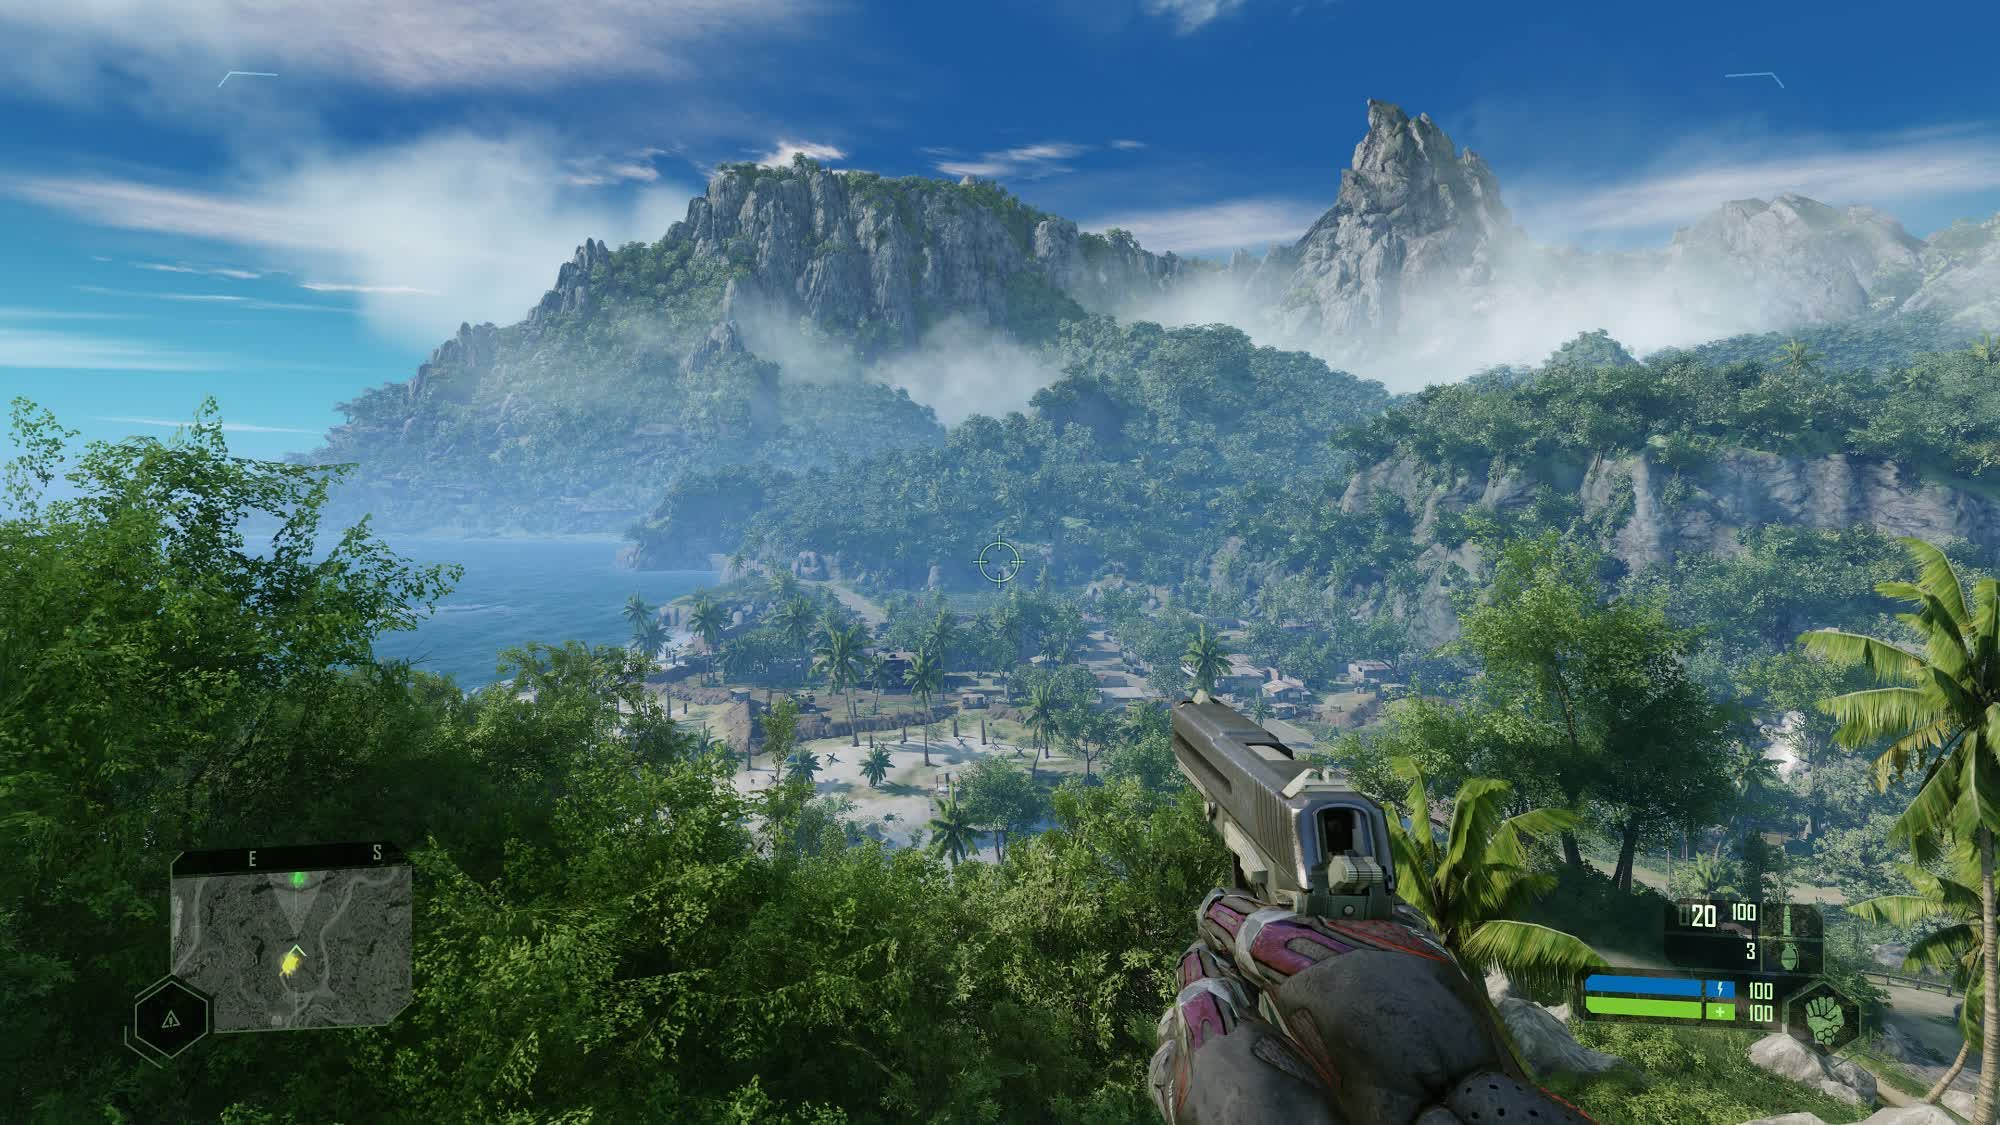 Crysis Remastered's top graphics setting is called Can it Run Crysis? Crytek releases 4K screenshot